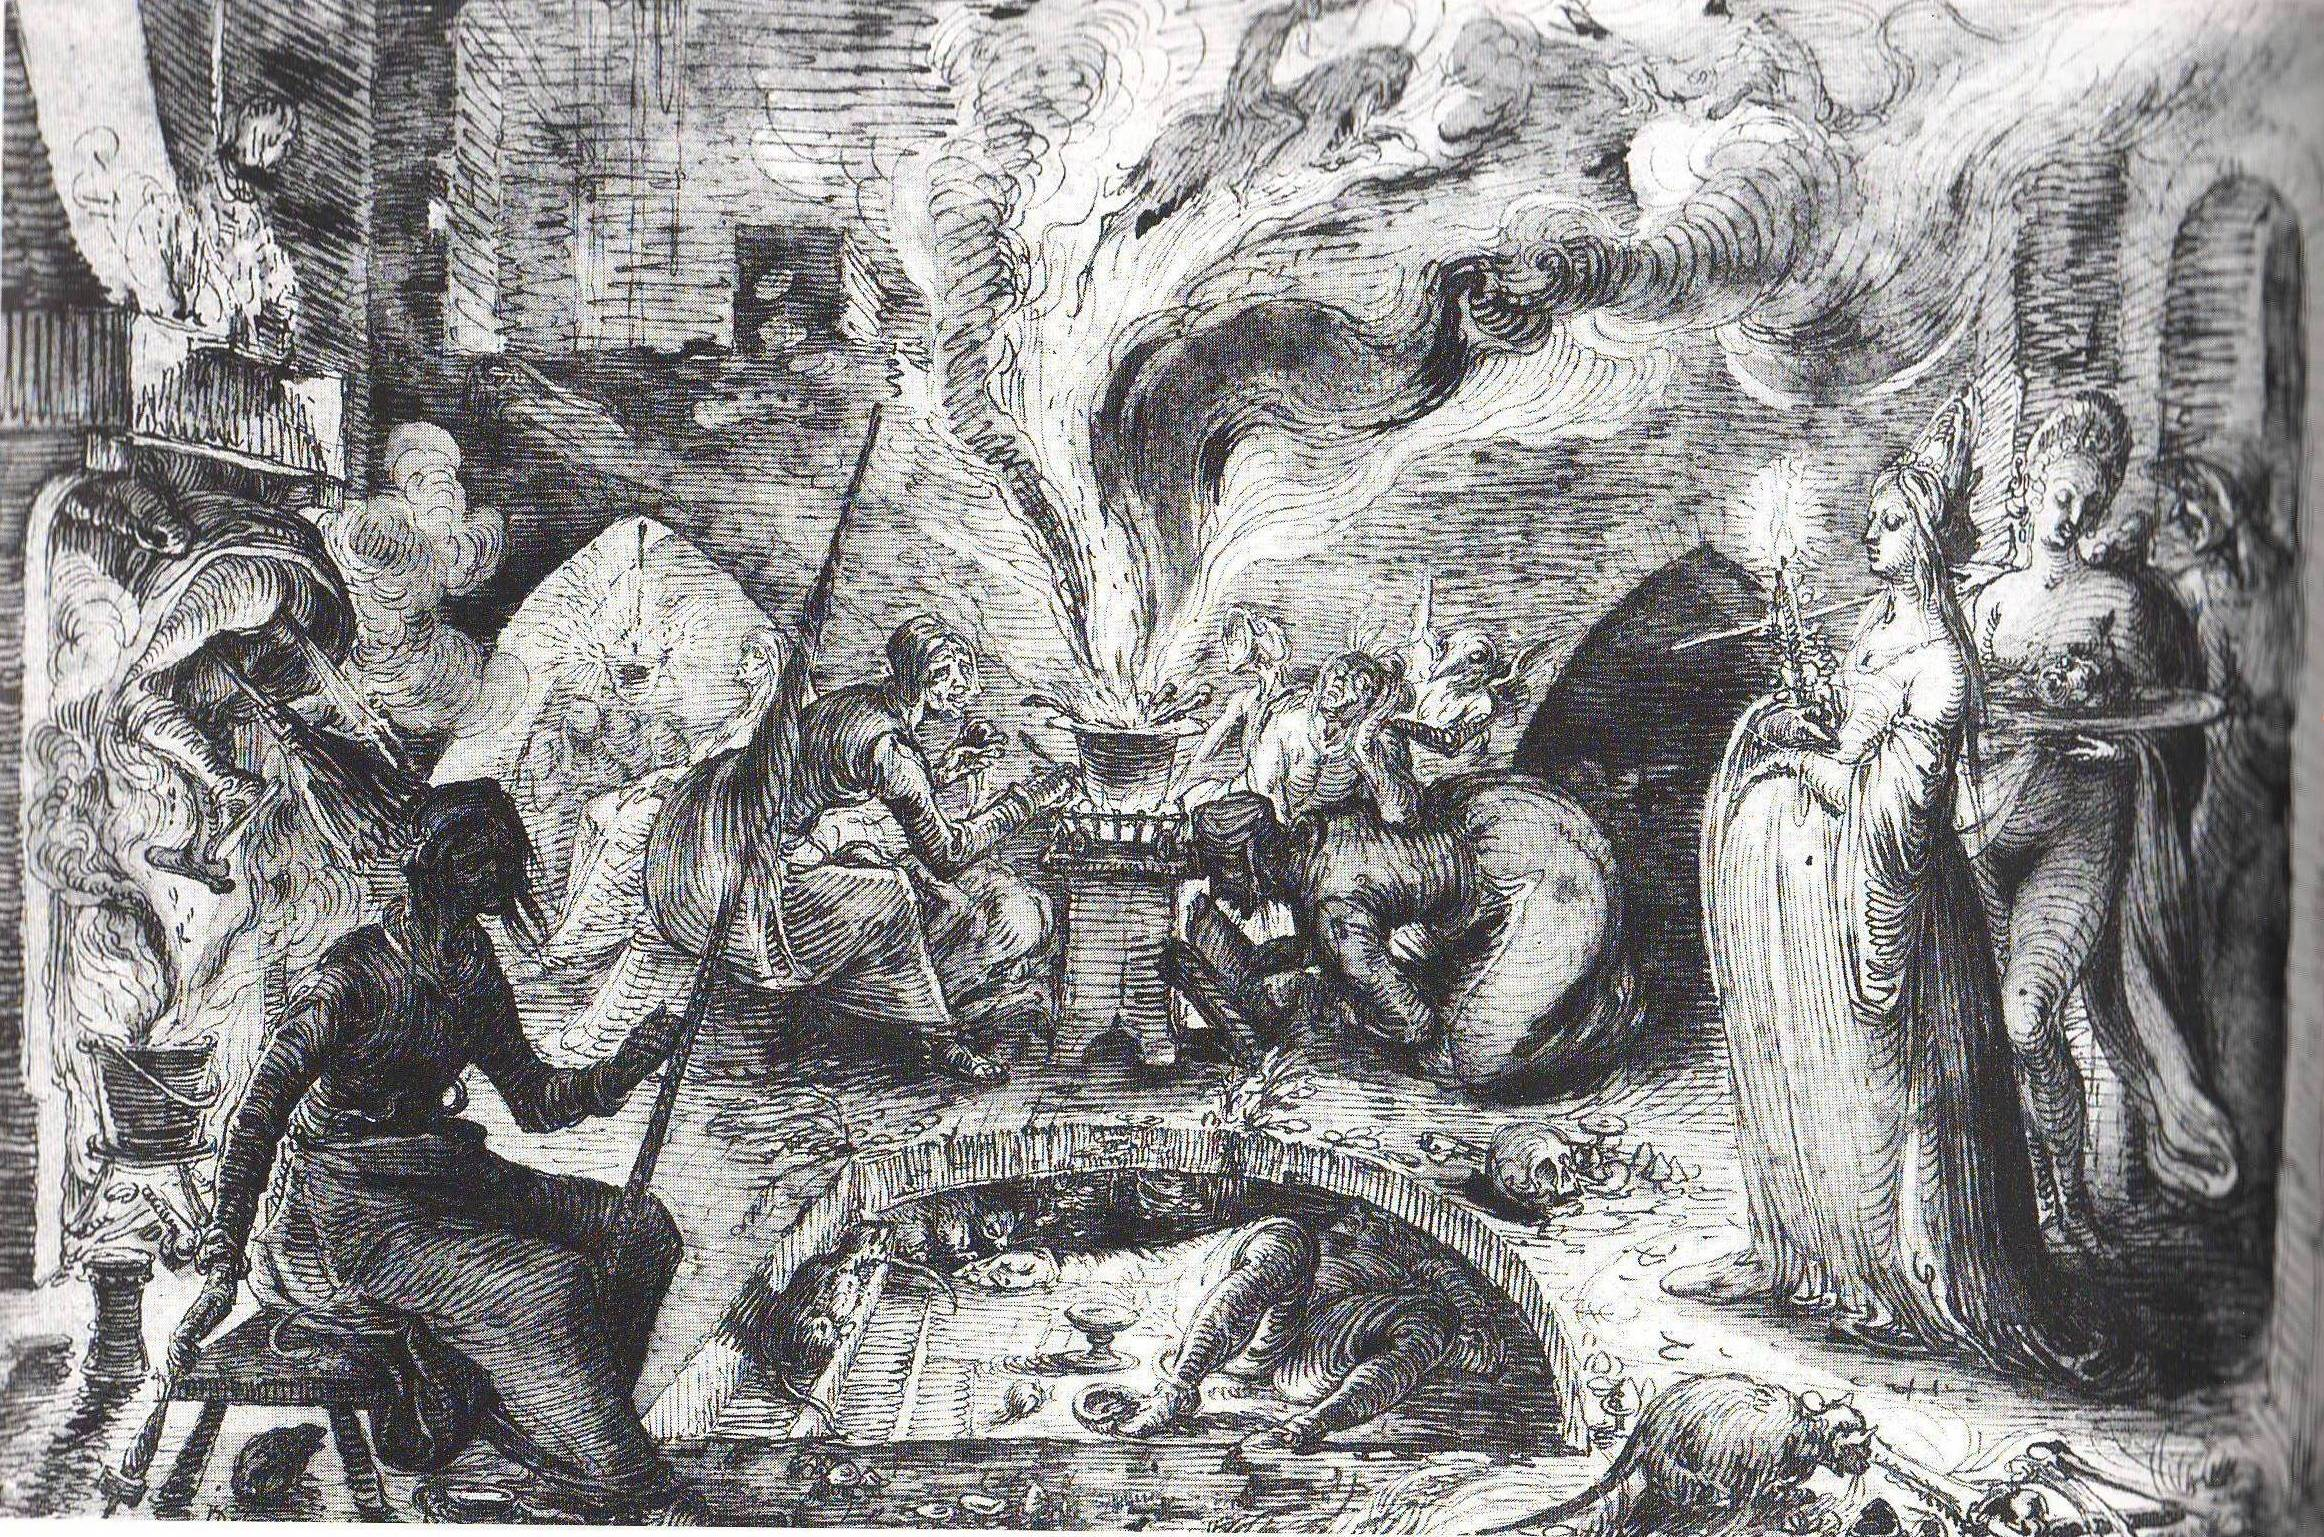 People around a cauldron spewing smoke, religious figures standing amid the chaos